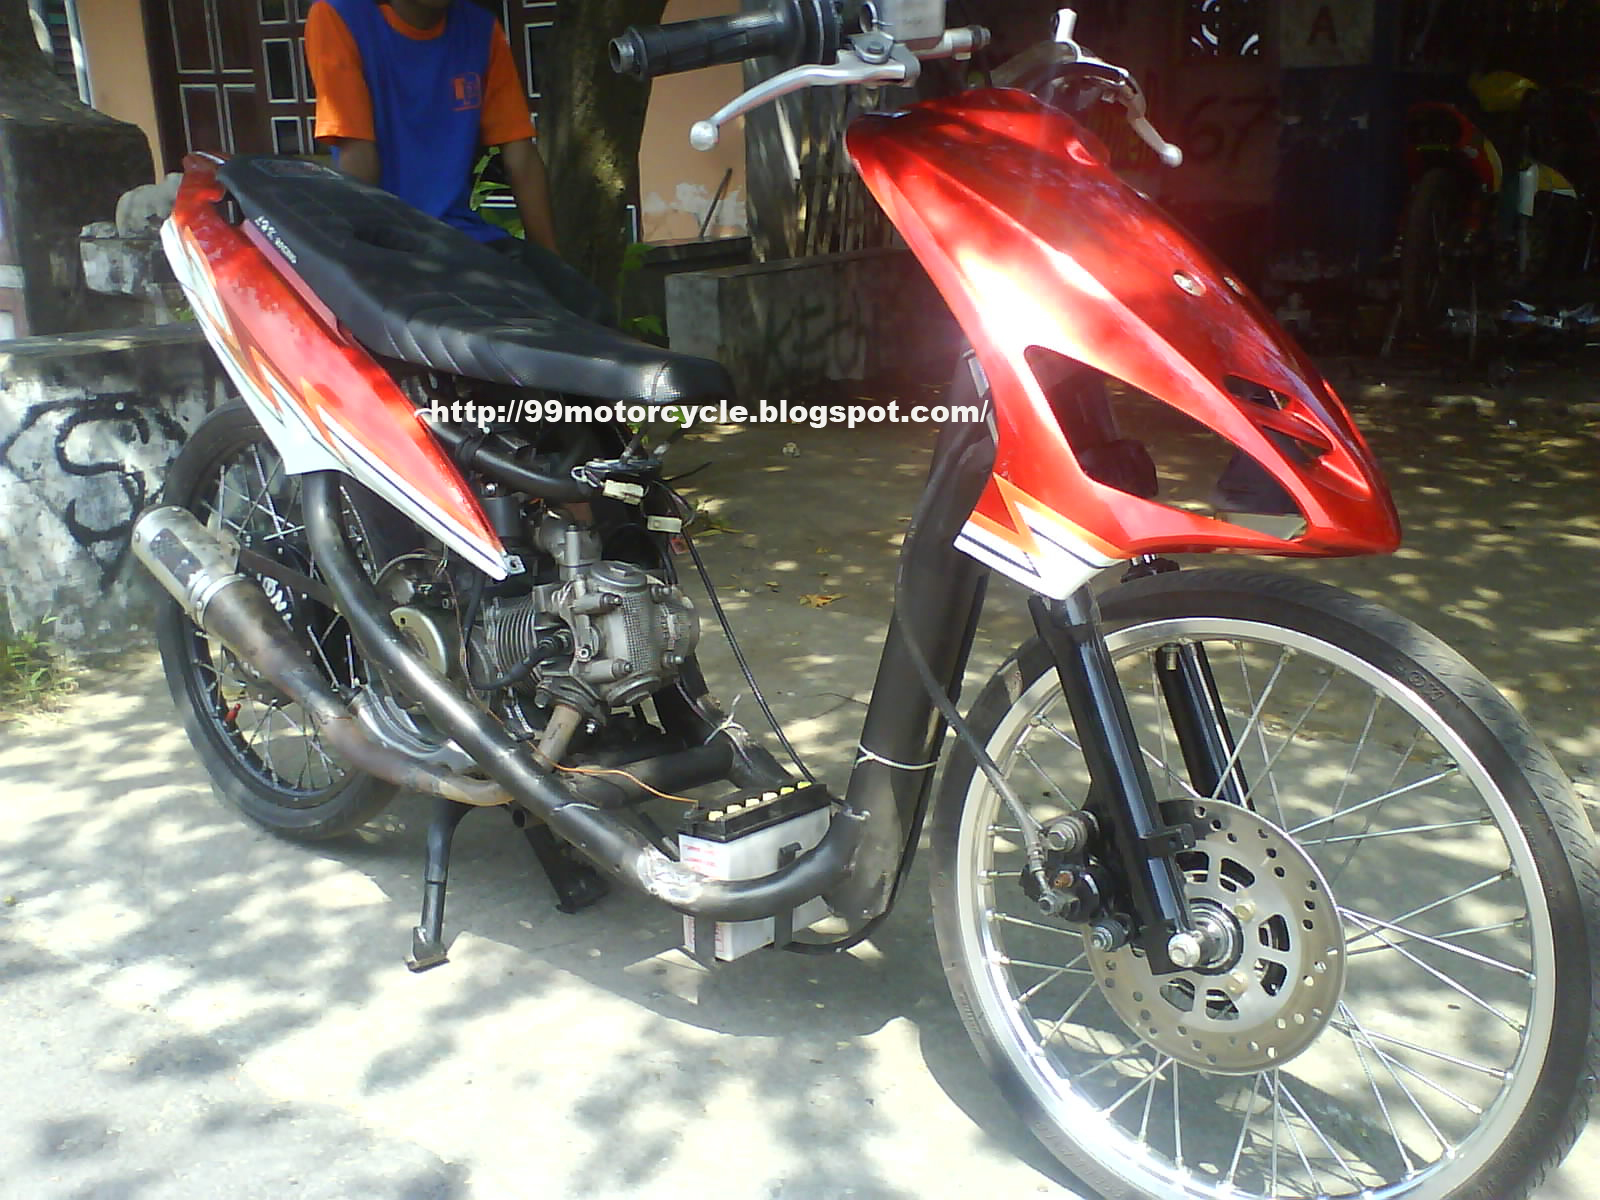 Rx King Sepeda Drag 10 Modifikasi motor 6 Motorcycles Mio Modification To Drag x